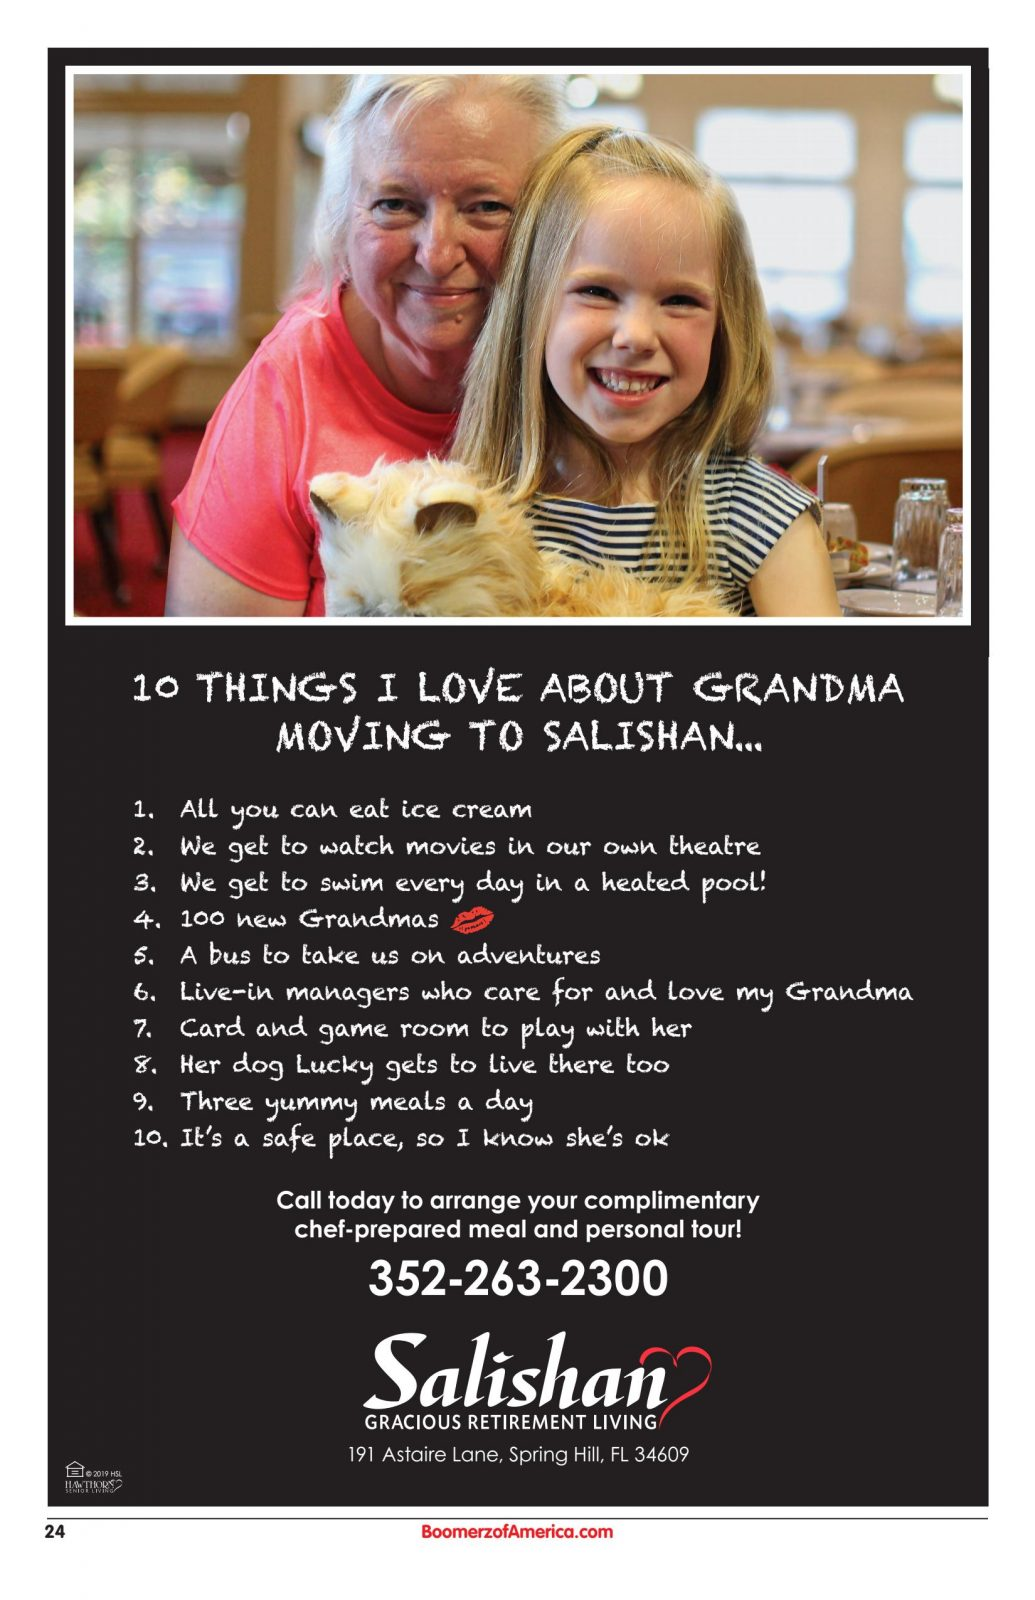 10 Things I Love About Grandma Moving to Salishan